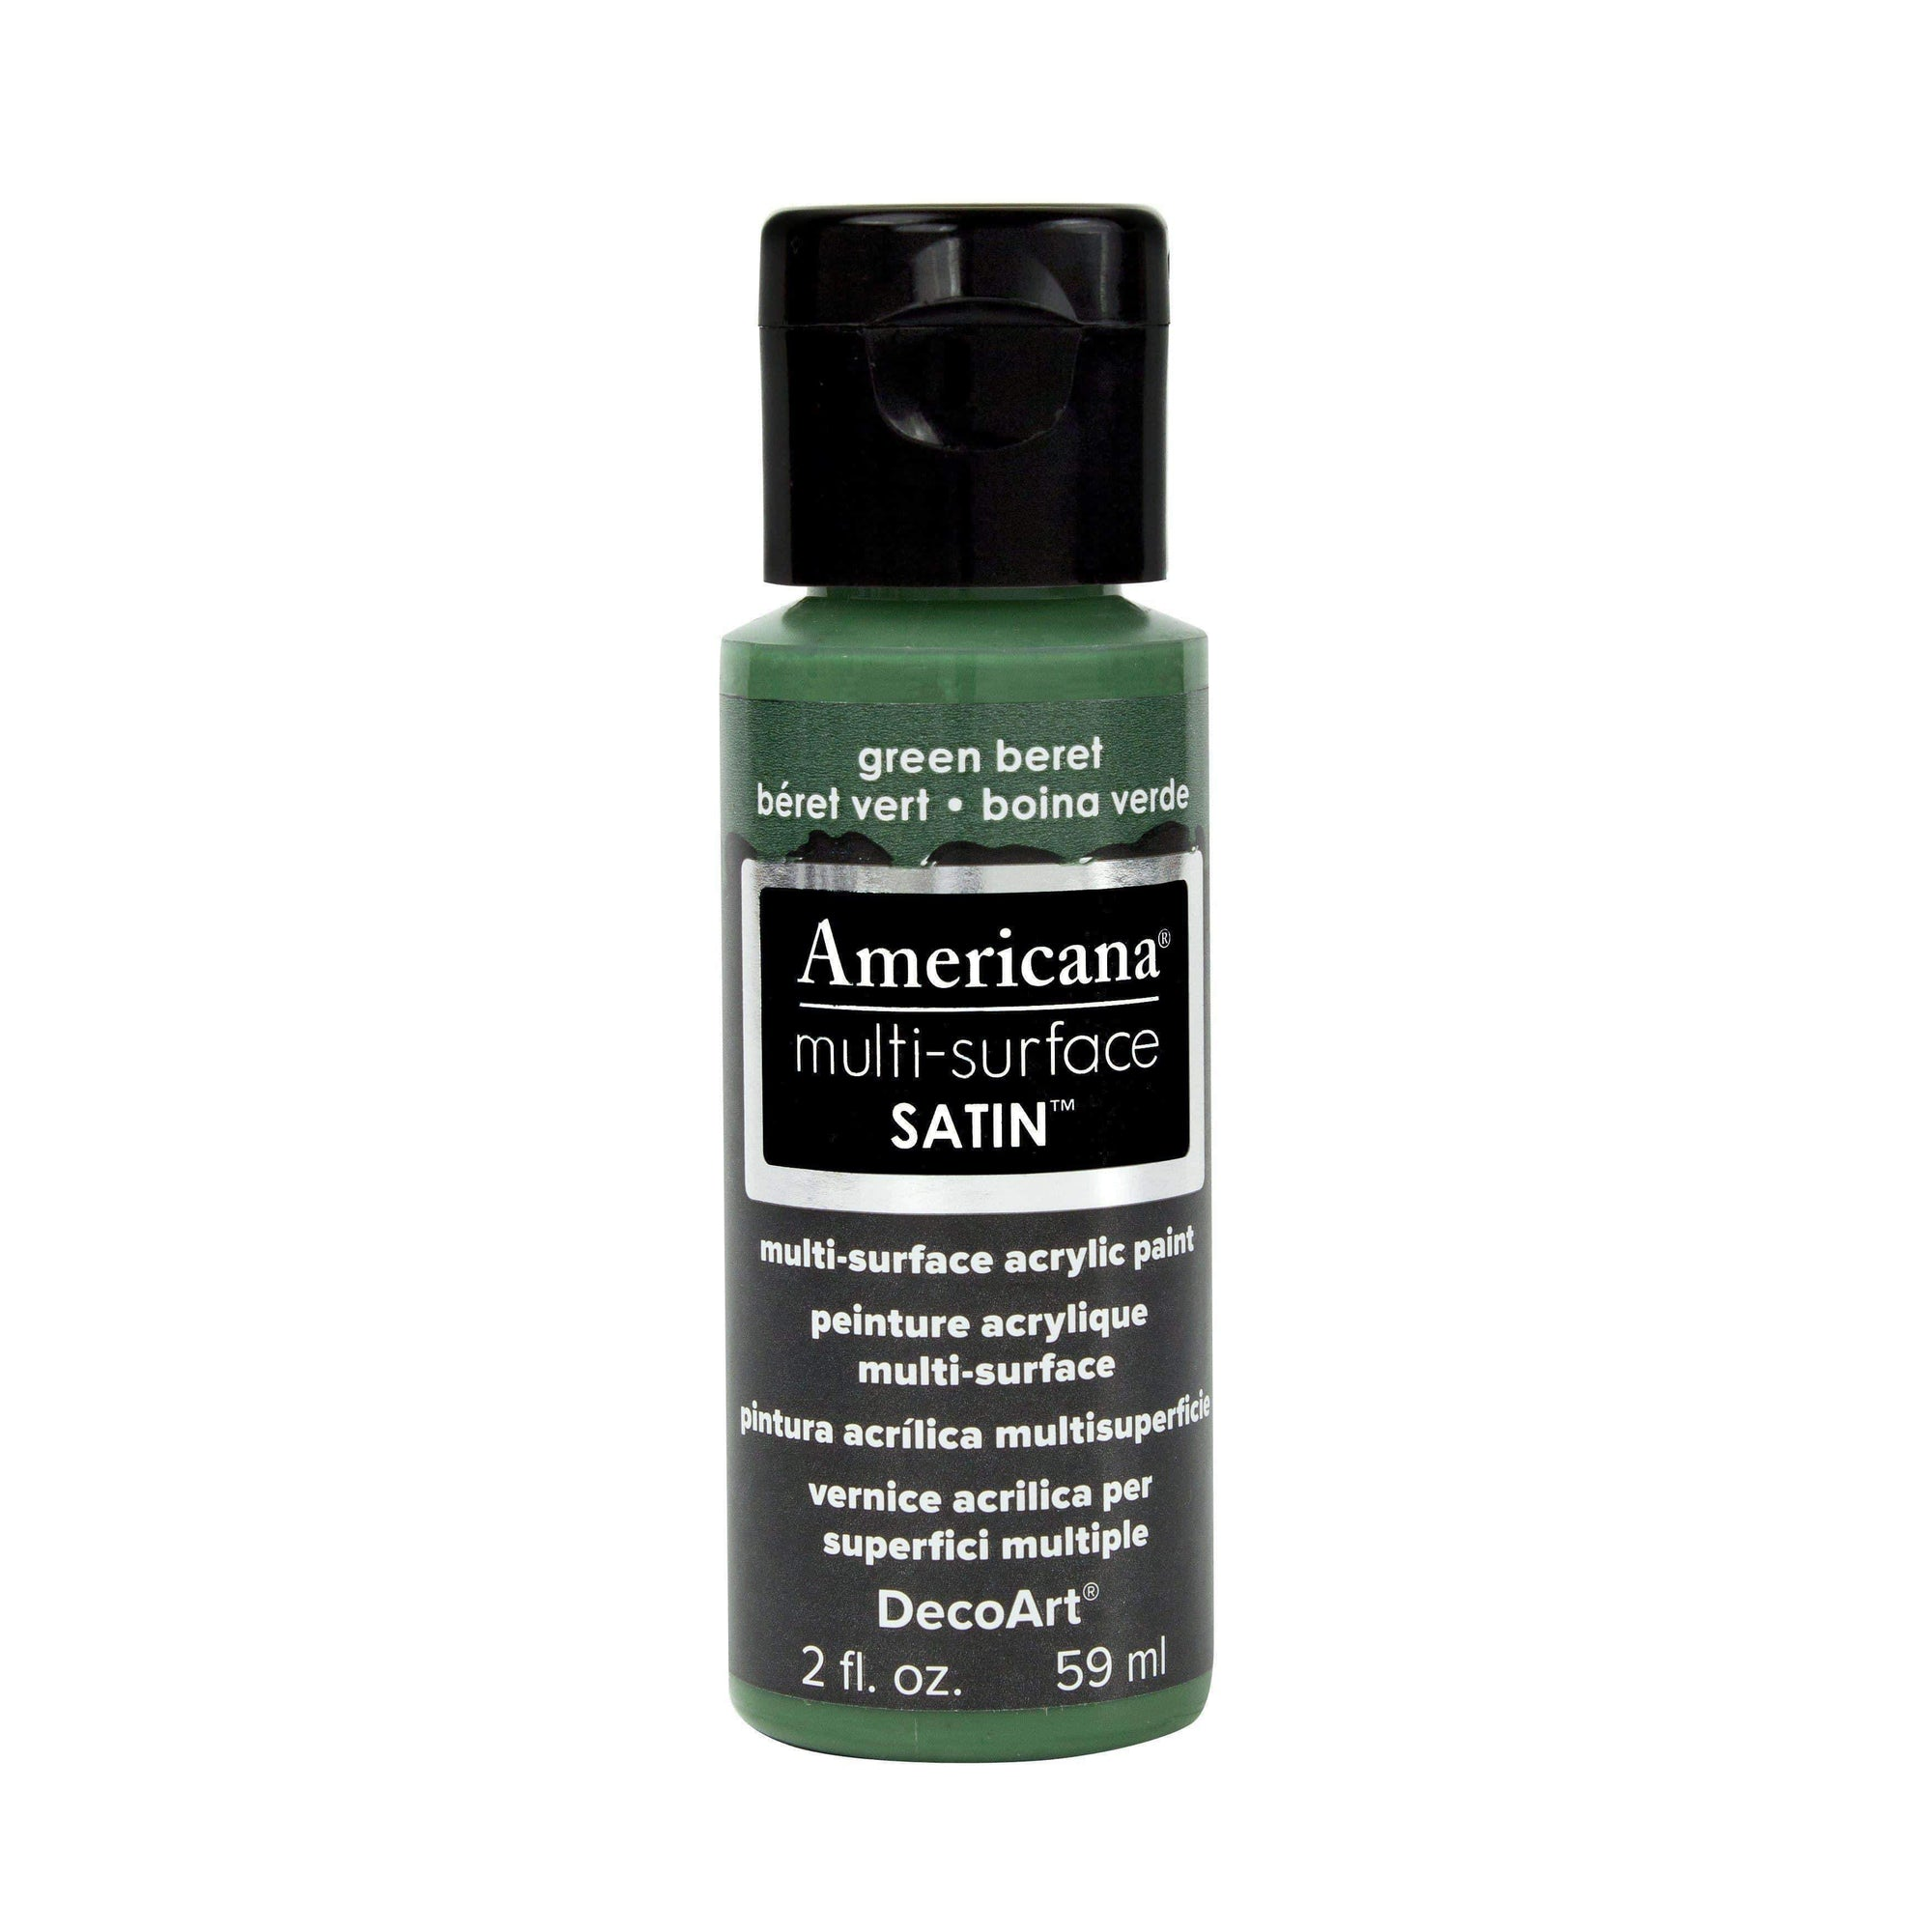 americana multi-surface 59ml DA521 boina verde DECO ART CENTROARTESANO